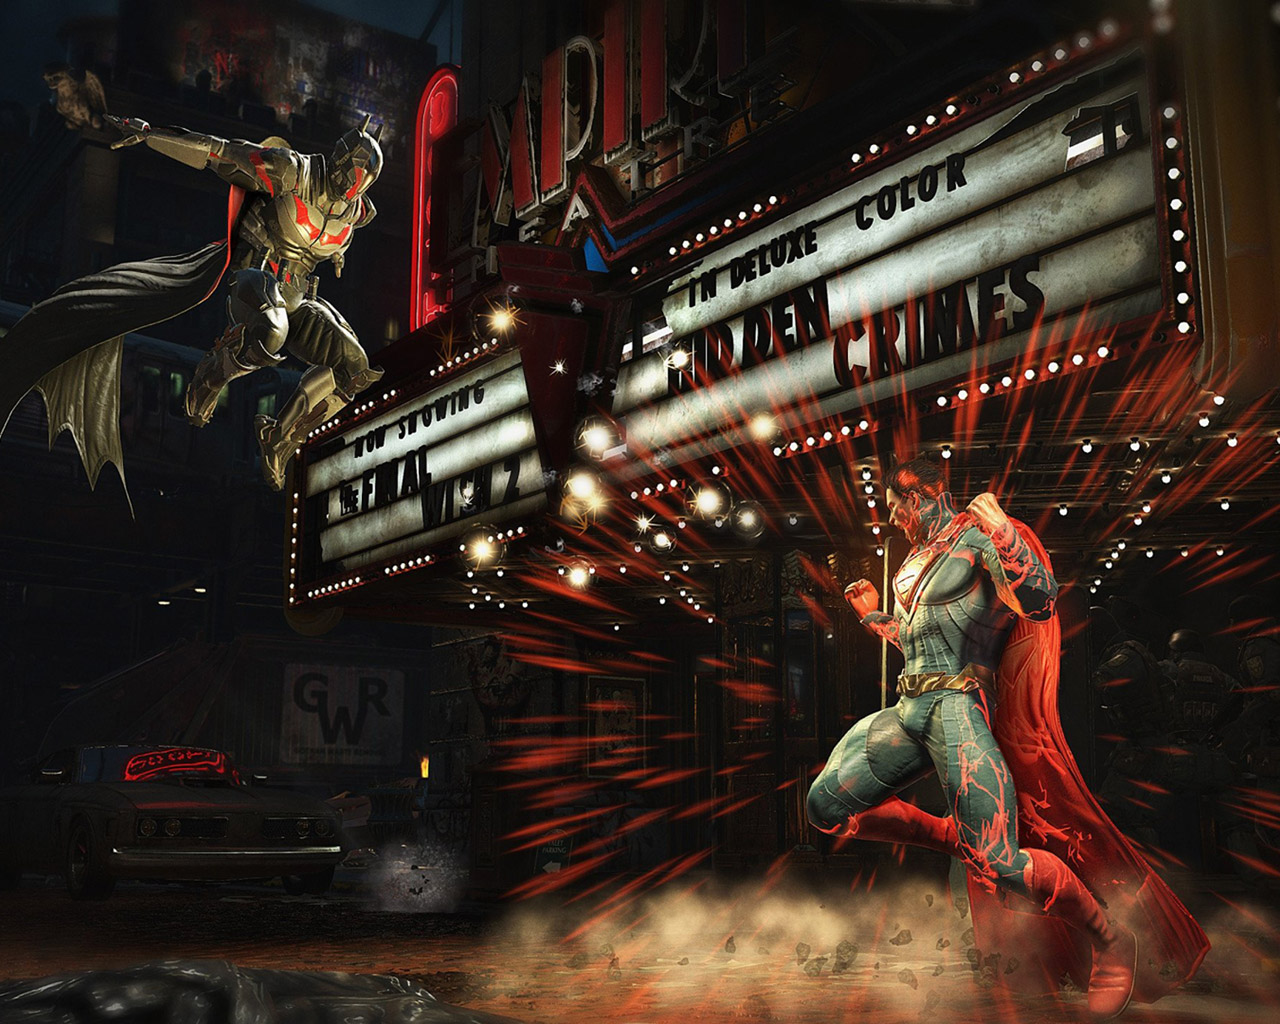 Free Injustice 2 Wallpaper in 1280x1024